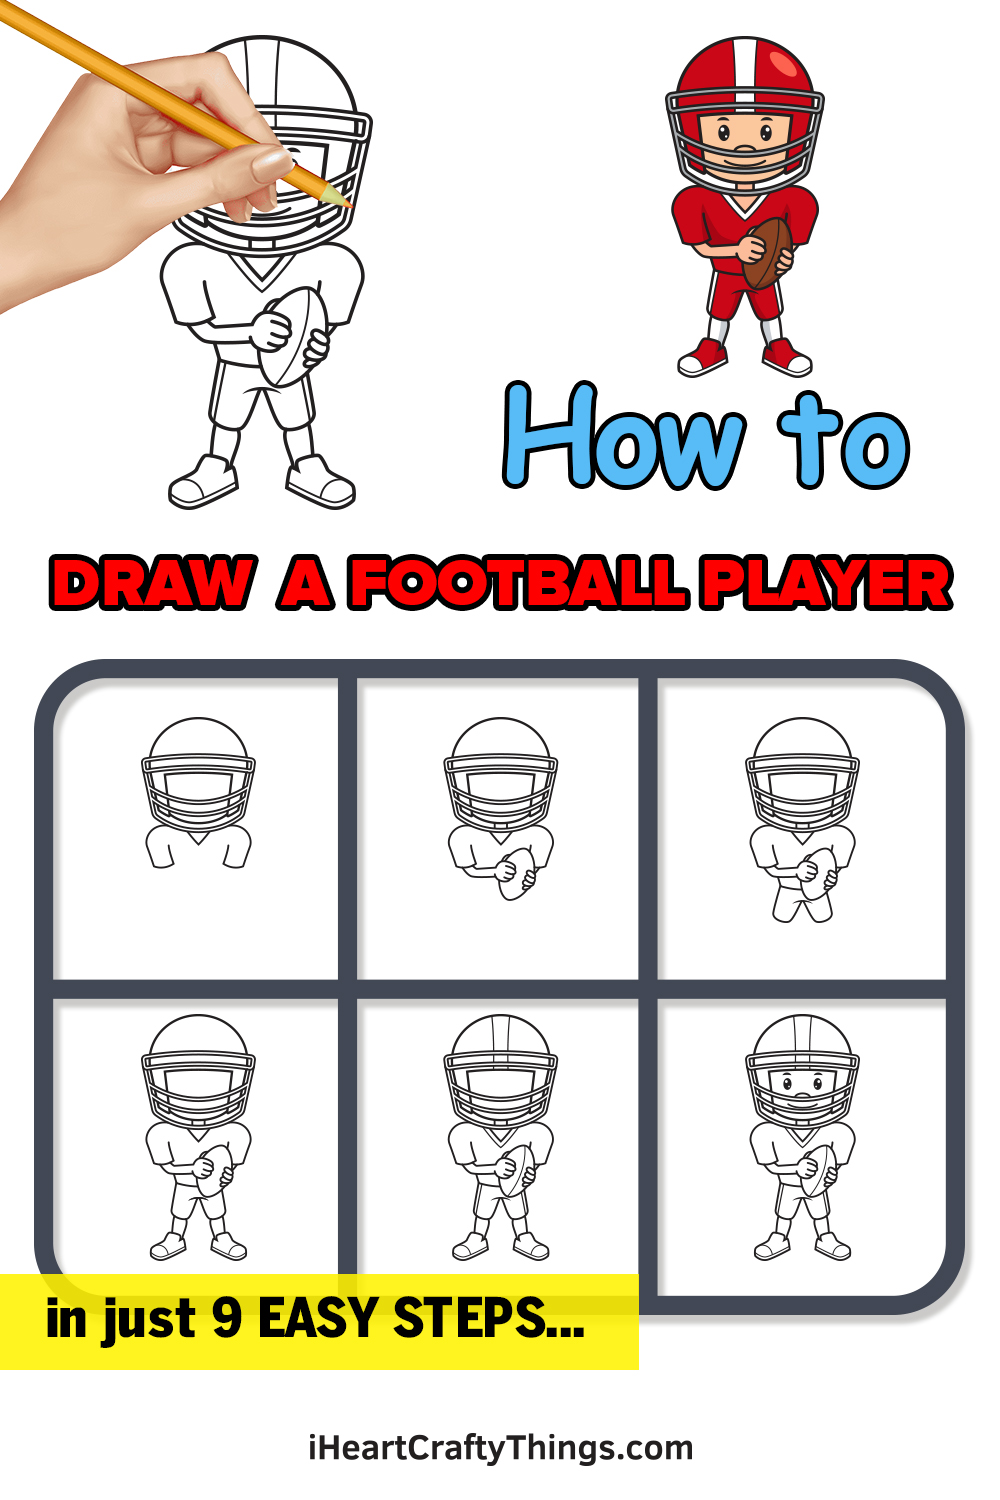 how to draw a football player in 9 easy steps